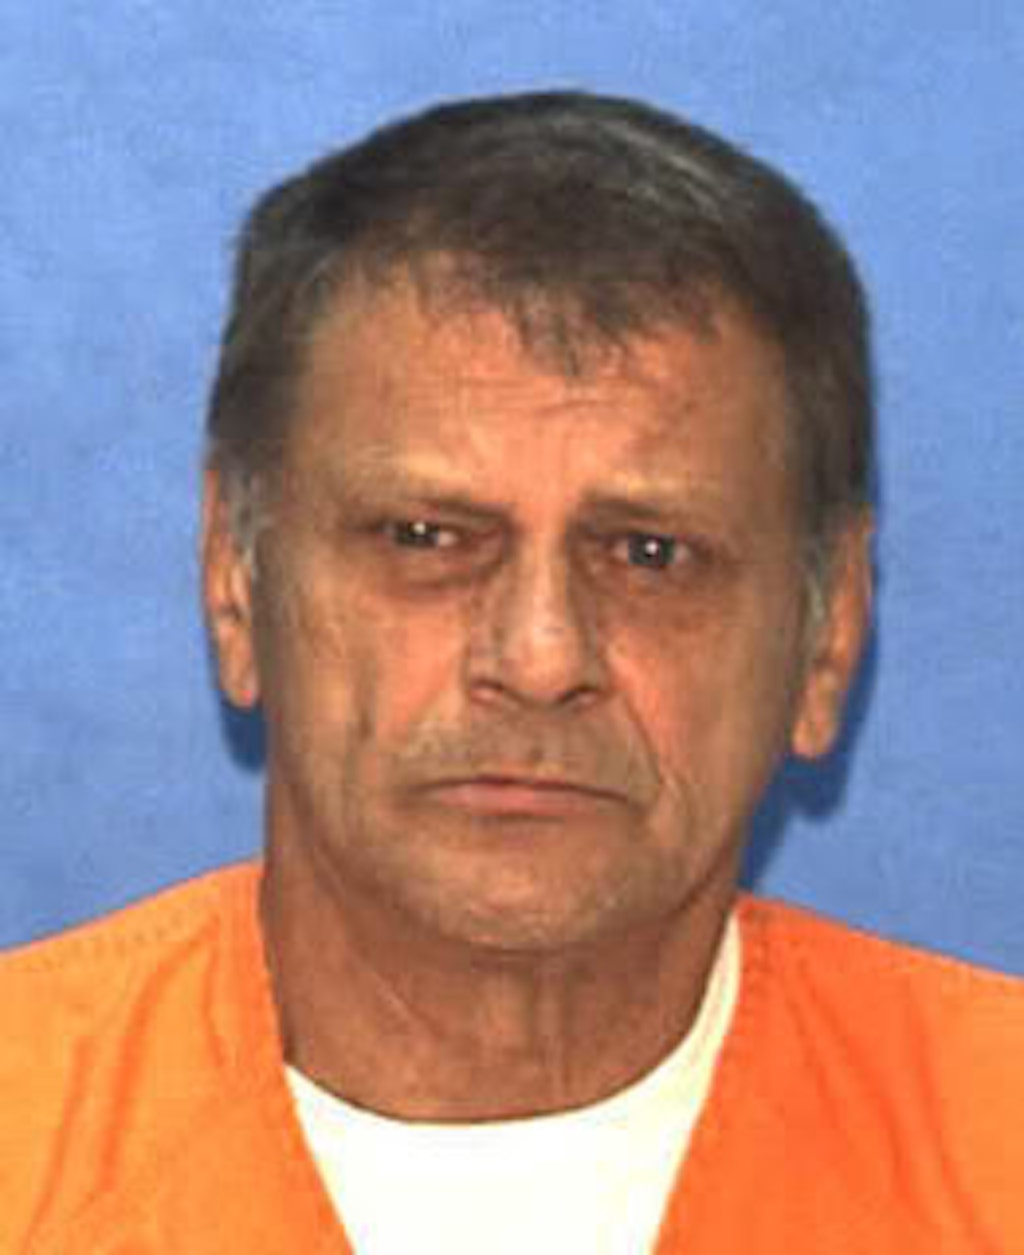 Nation's Longest Serving Death Row Inmate Dies 40 Years After Conviction